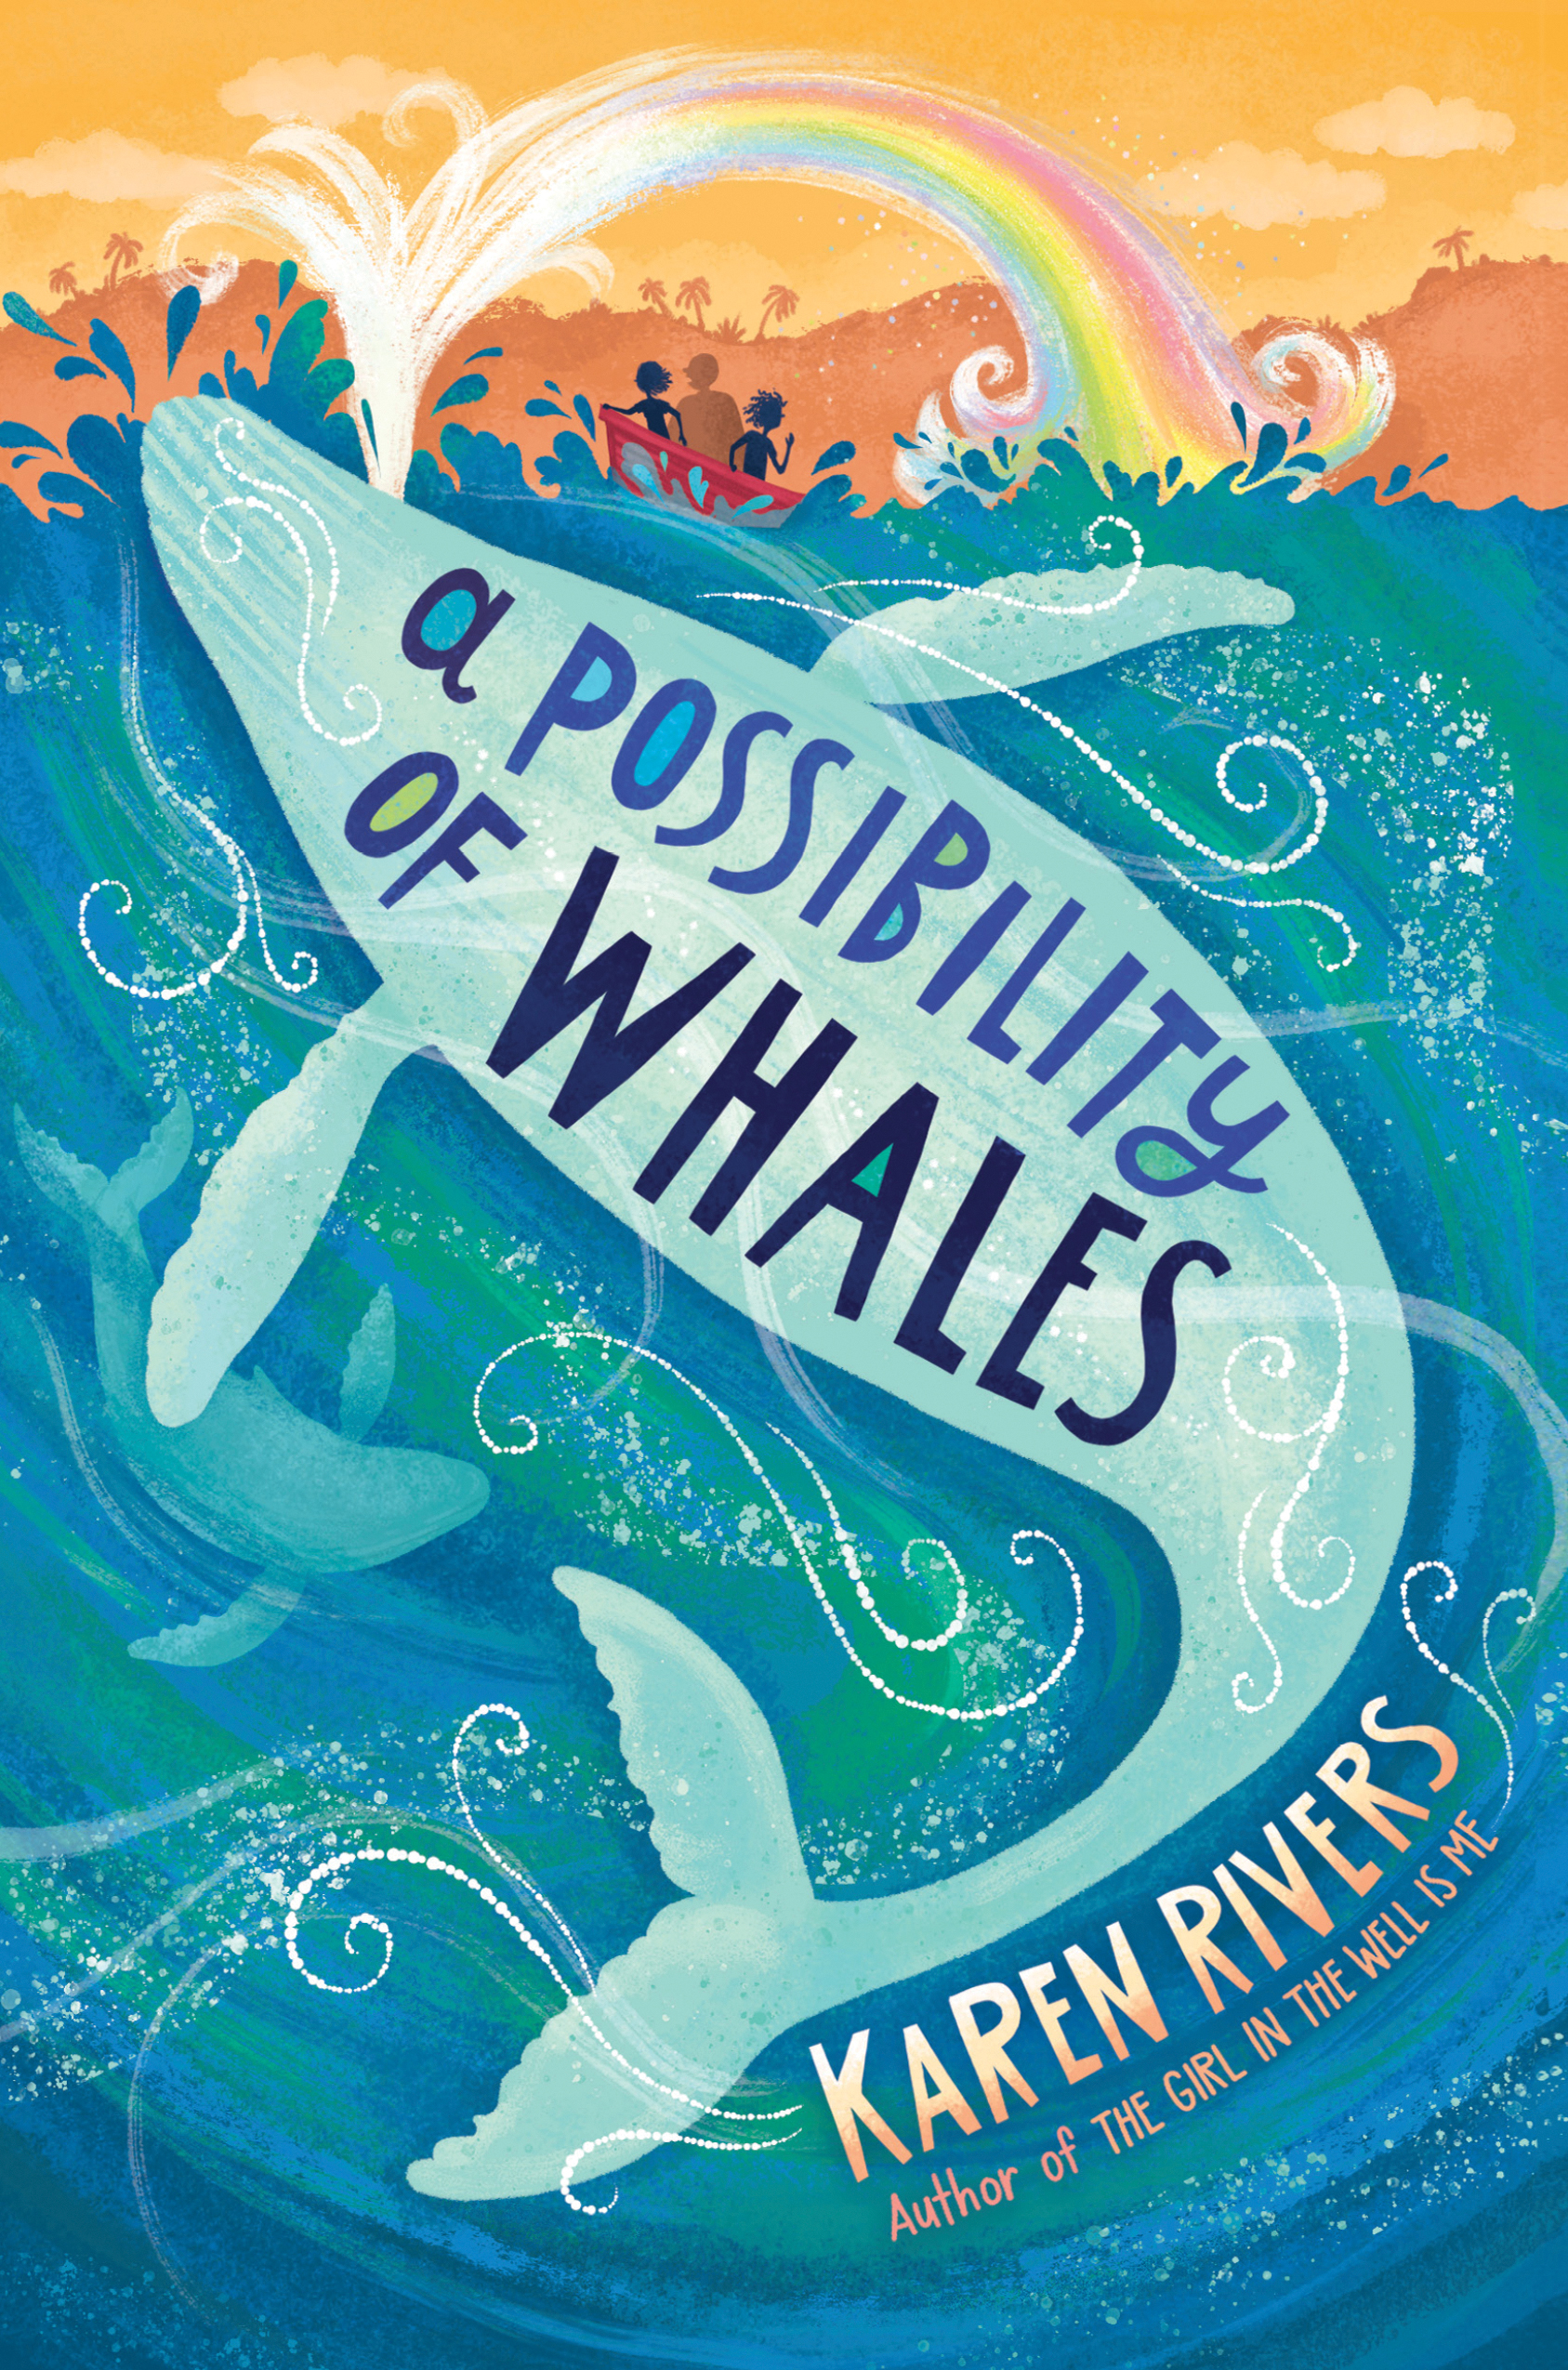 A Possibility of Whales with Author Karen Rivers